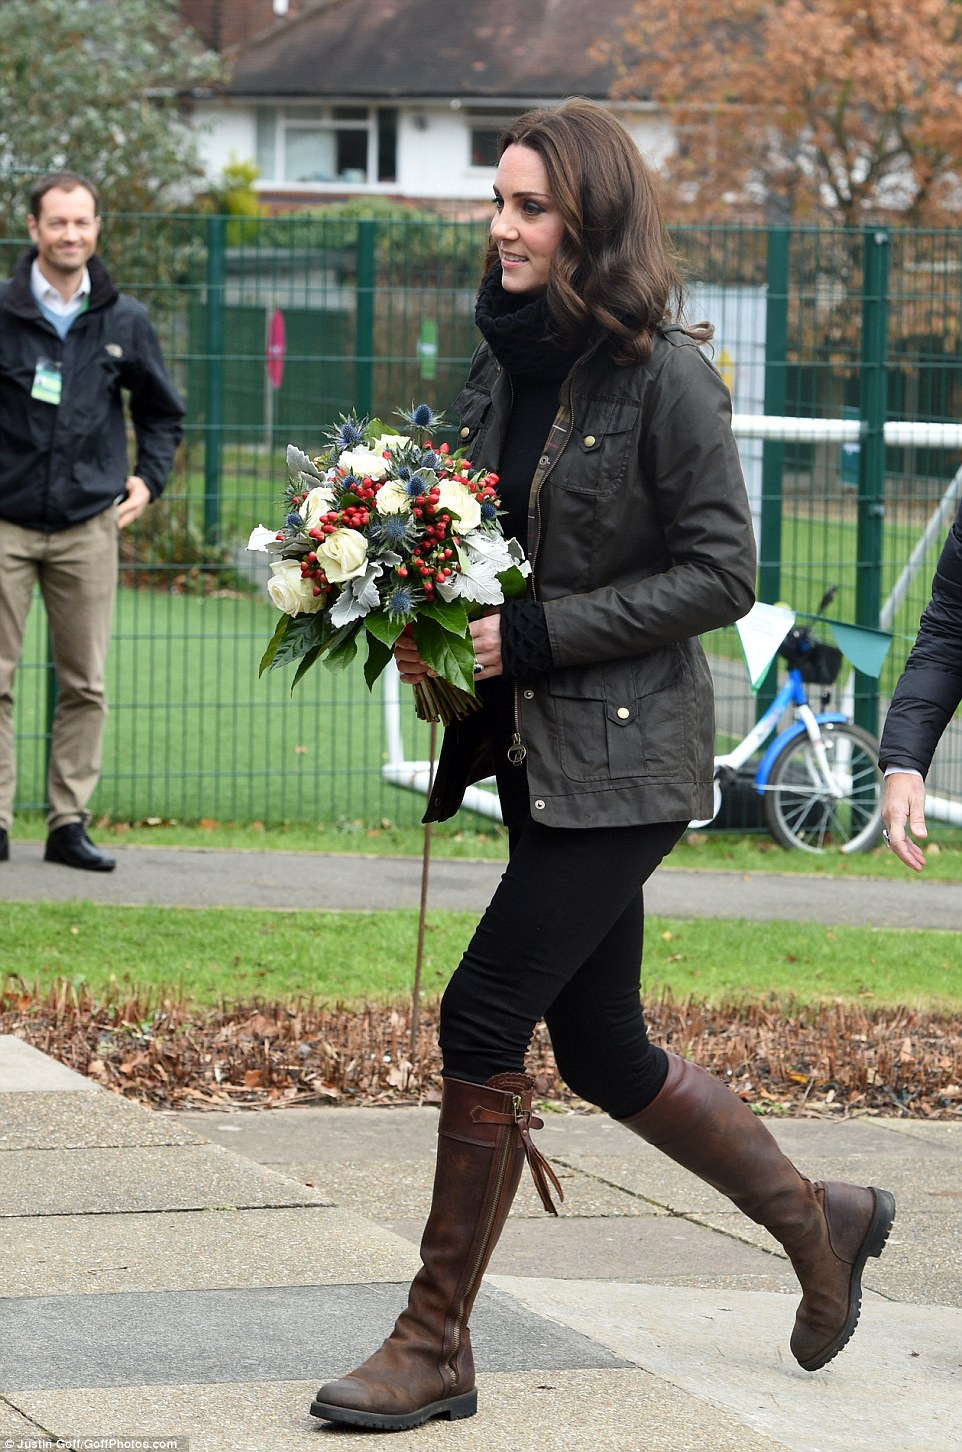 Country Kate! The pregnant Duchess of Cambridge dressed down in a Barbour jacket and her trusty boots as she arrived for a day of gardening with children in London